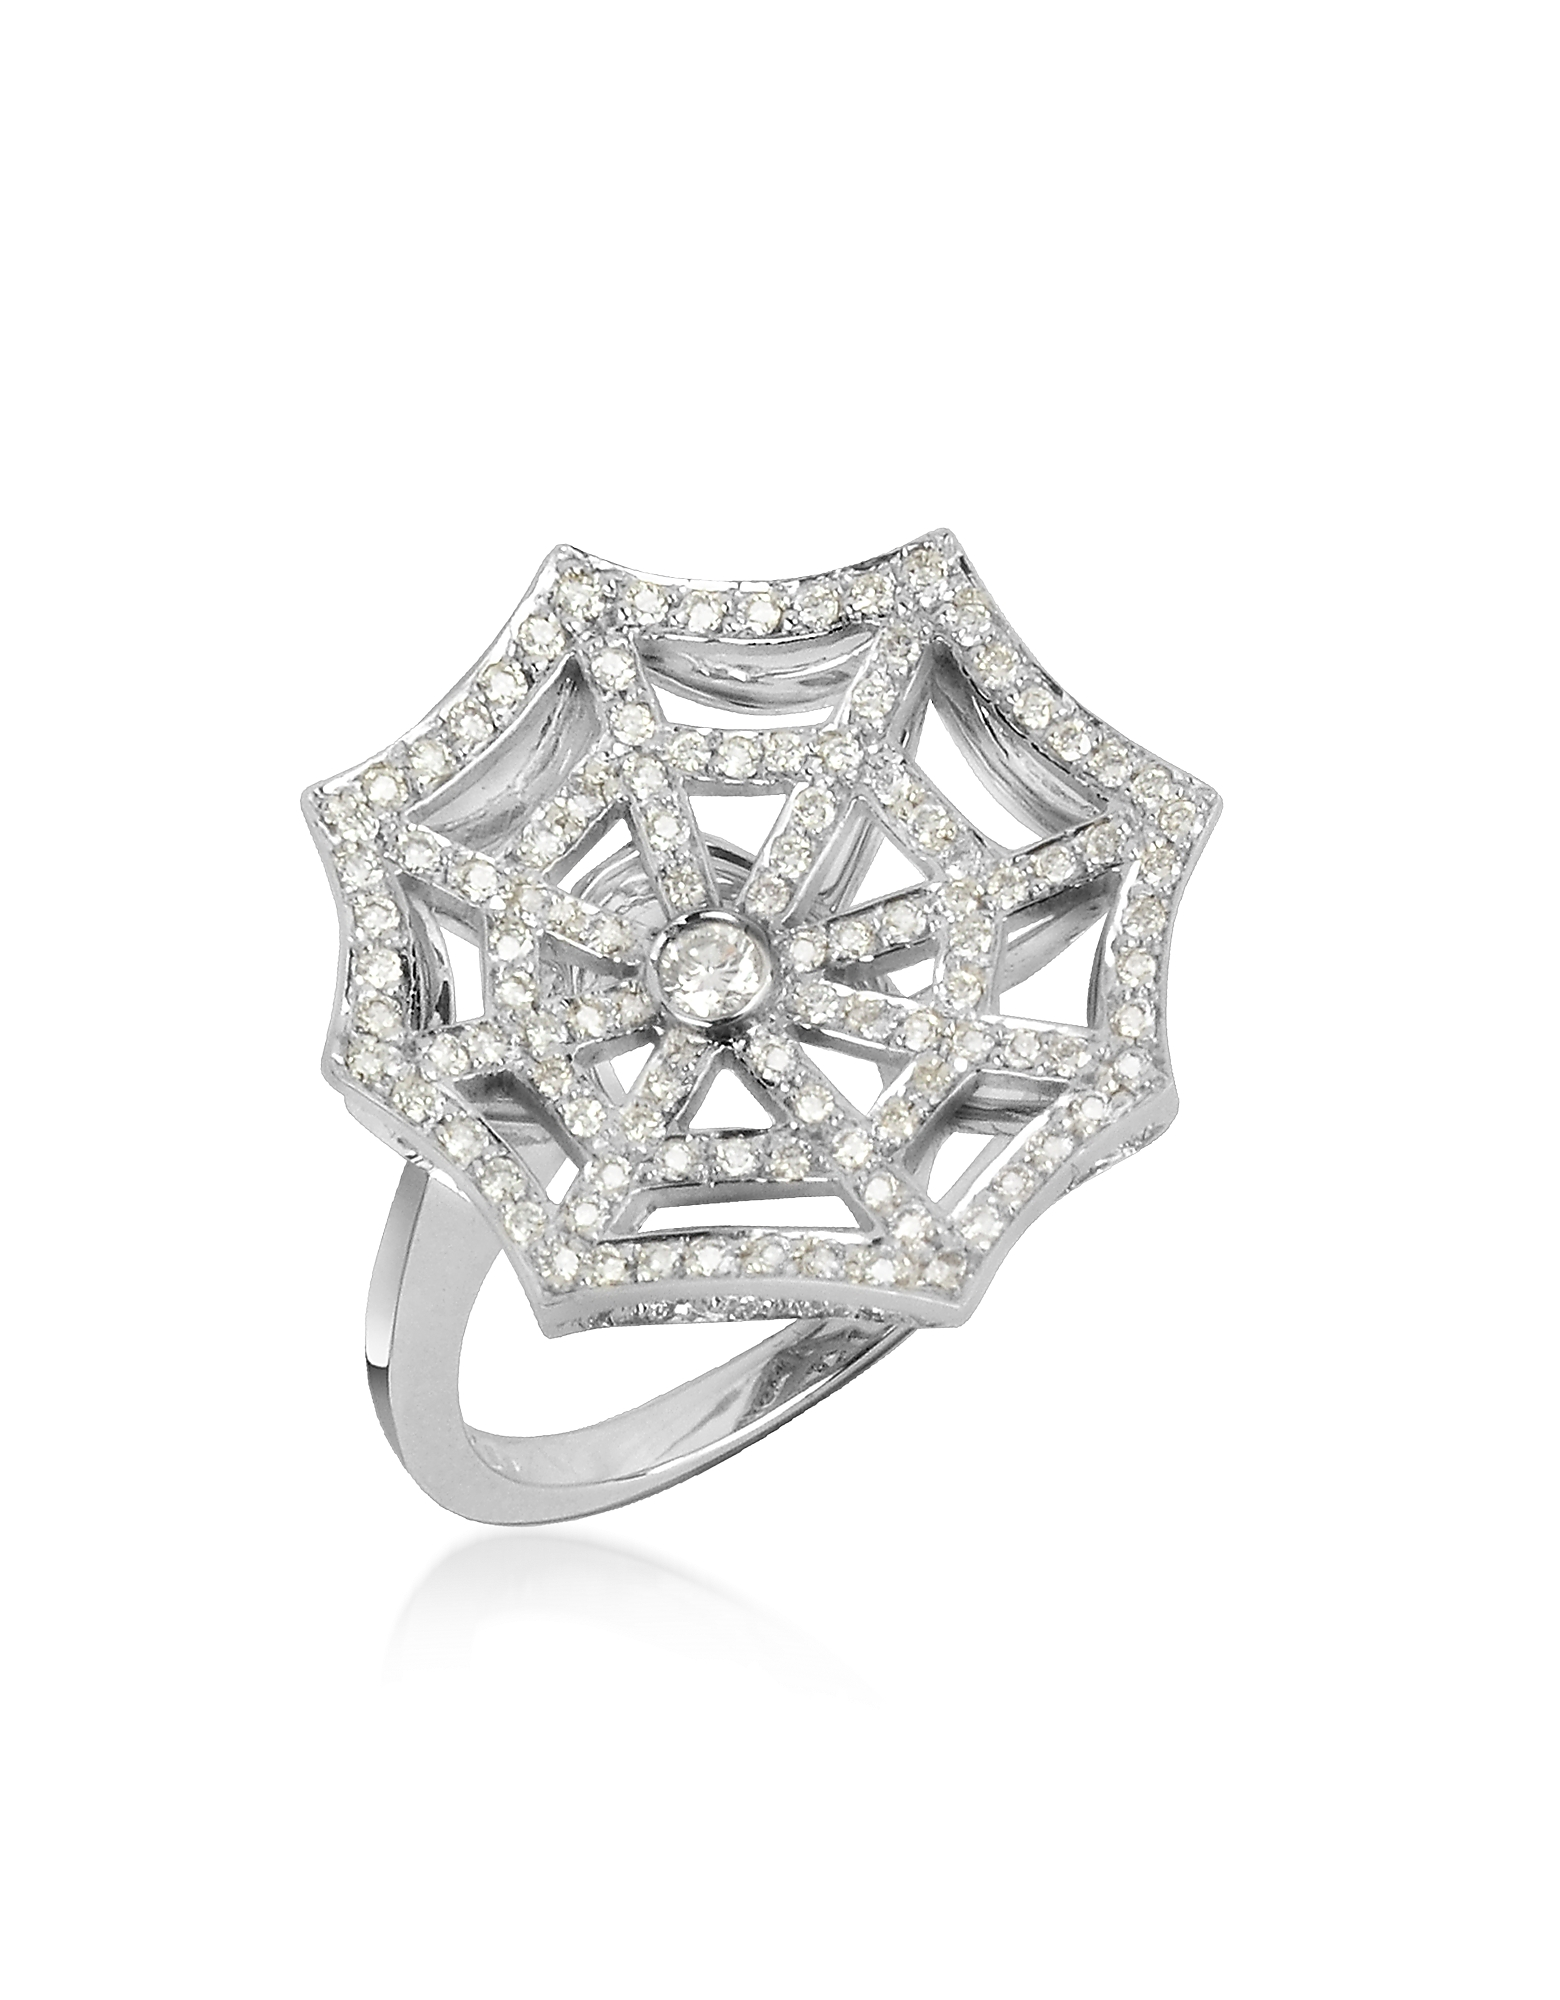 Incanto Royale Rings, 0.73 ctw Diamond 18K Gold Ring